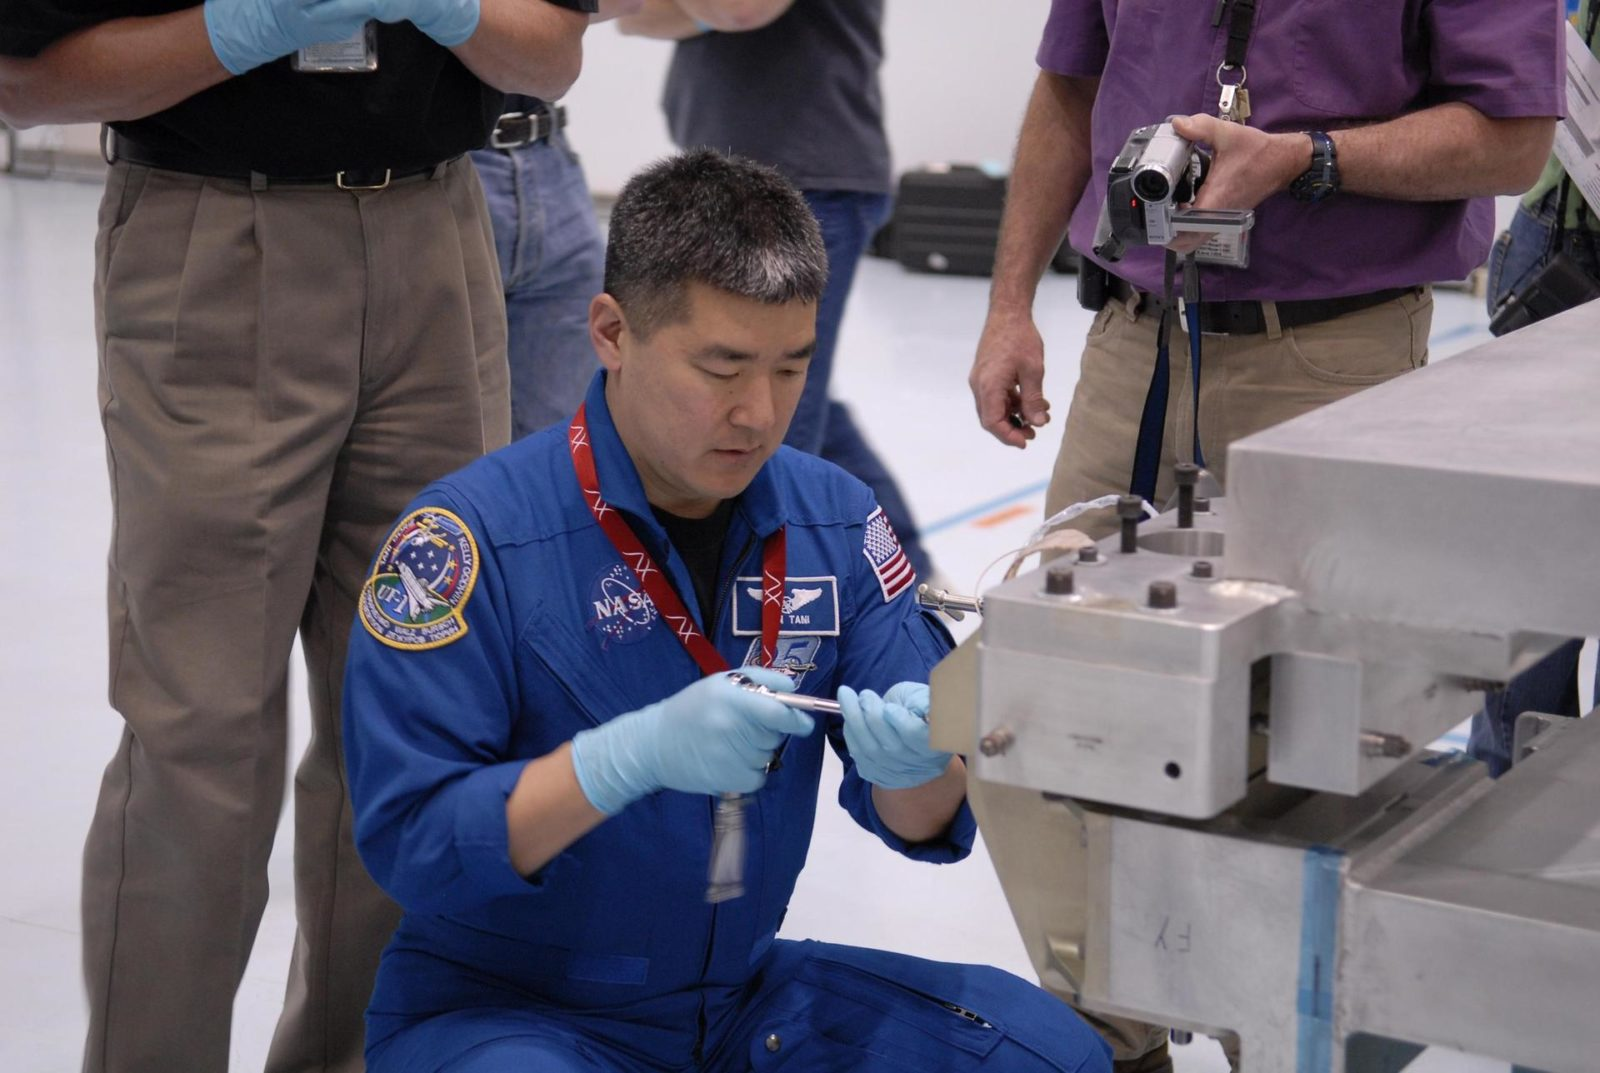 """KENNEDY SPACE CENTER, FLA. --  Mission STS-120 Mission Specialist Daniel Tani familiarizes himself with  equipment inside the Space Station Processing Facility during a visit to Kennedy Space Center. Other STS-120 crew members include Commander Pam Melroy, Pilot George Zamka, and Mission Specialists Scott Parazynski, Douglas Wheelock, Stephanie Wilson, Paolo Nespoli (with the European Space Agency) and Clayton Anderson.  Mission STS-120 will deliver the Node 2 """"Harmony"""" connecting module to the station. During the mission, Tani and Anderson will transfer to the station and remain as flight engineers for Expedition 15. The mission is tentatively scheduled for August of this year. Photo credit: NASA/Kim Shiflett KSC-07pd0742"""